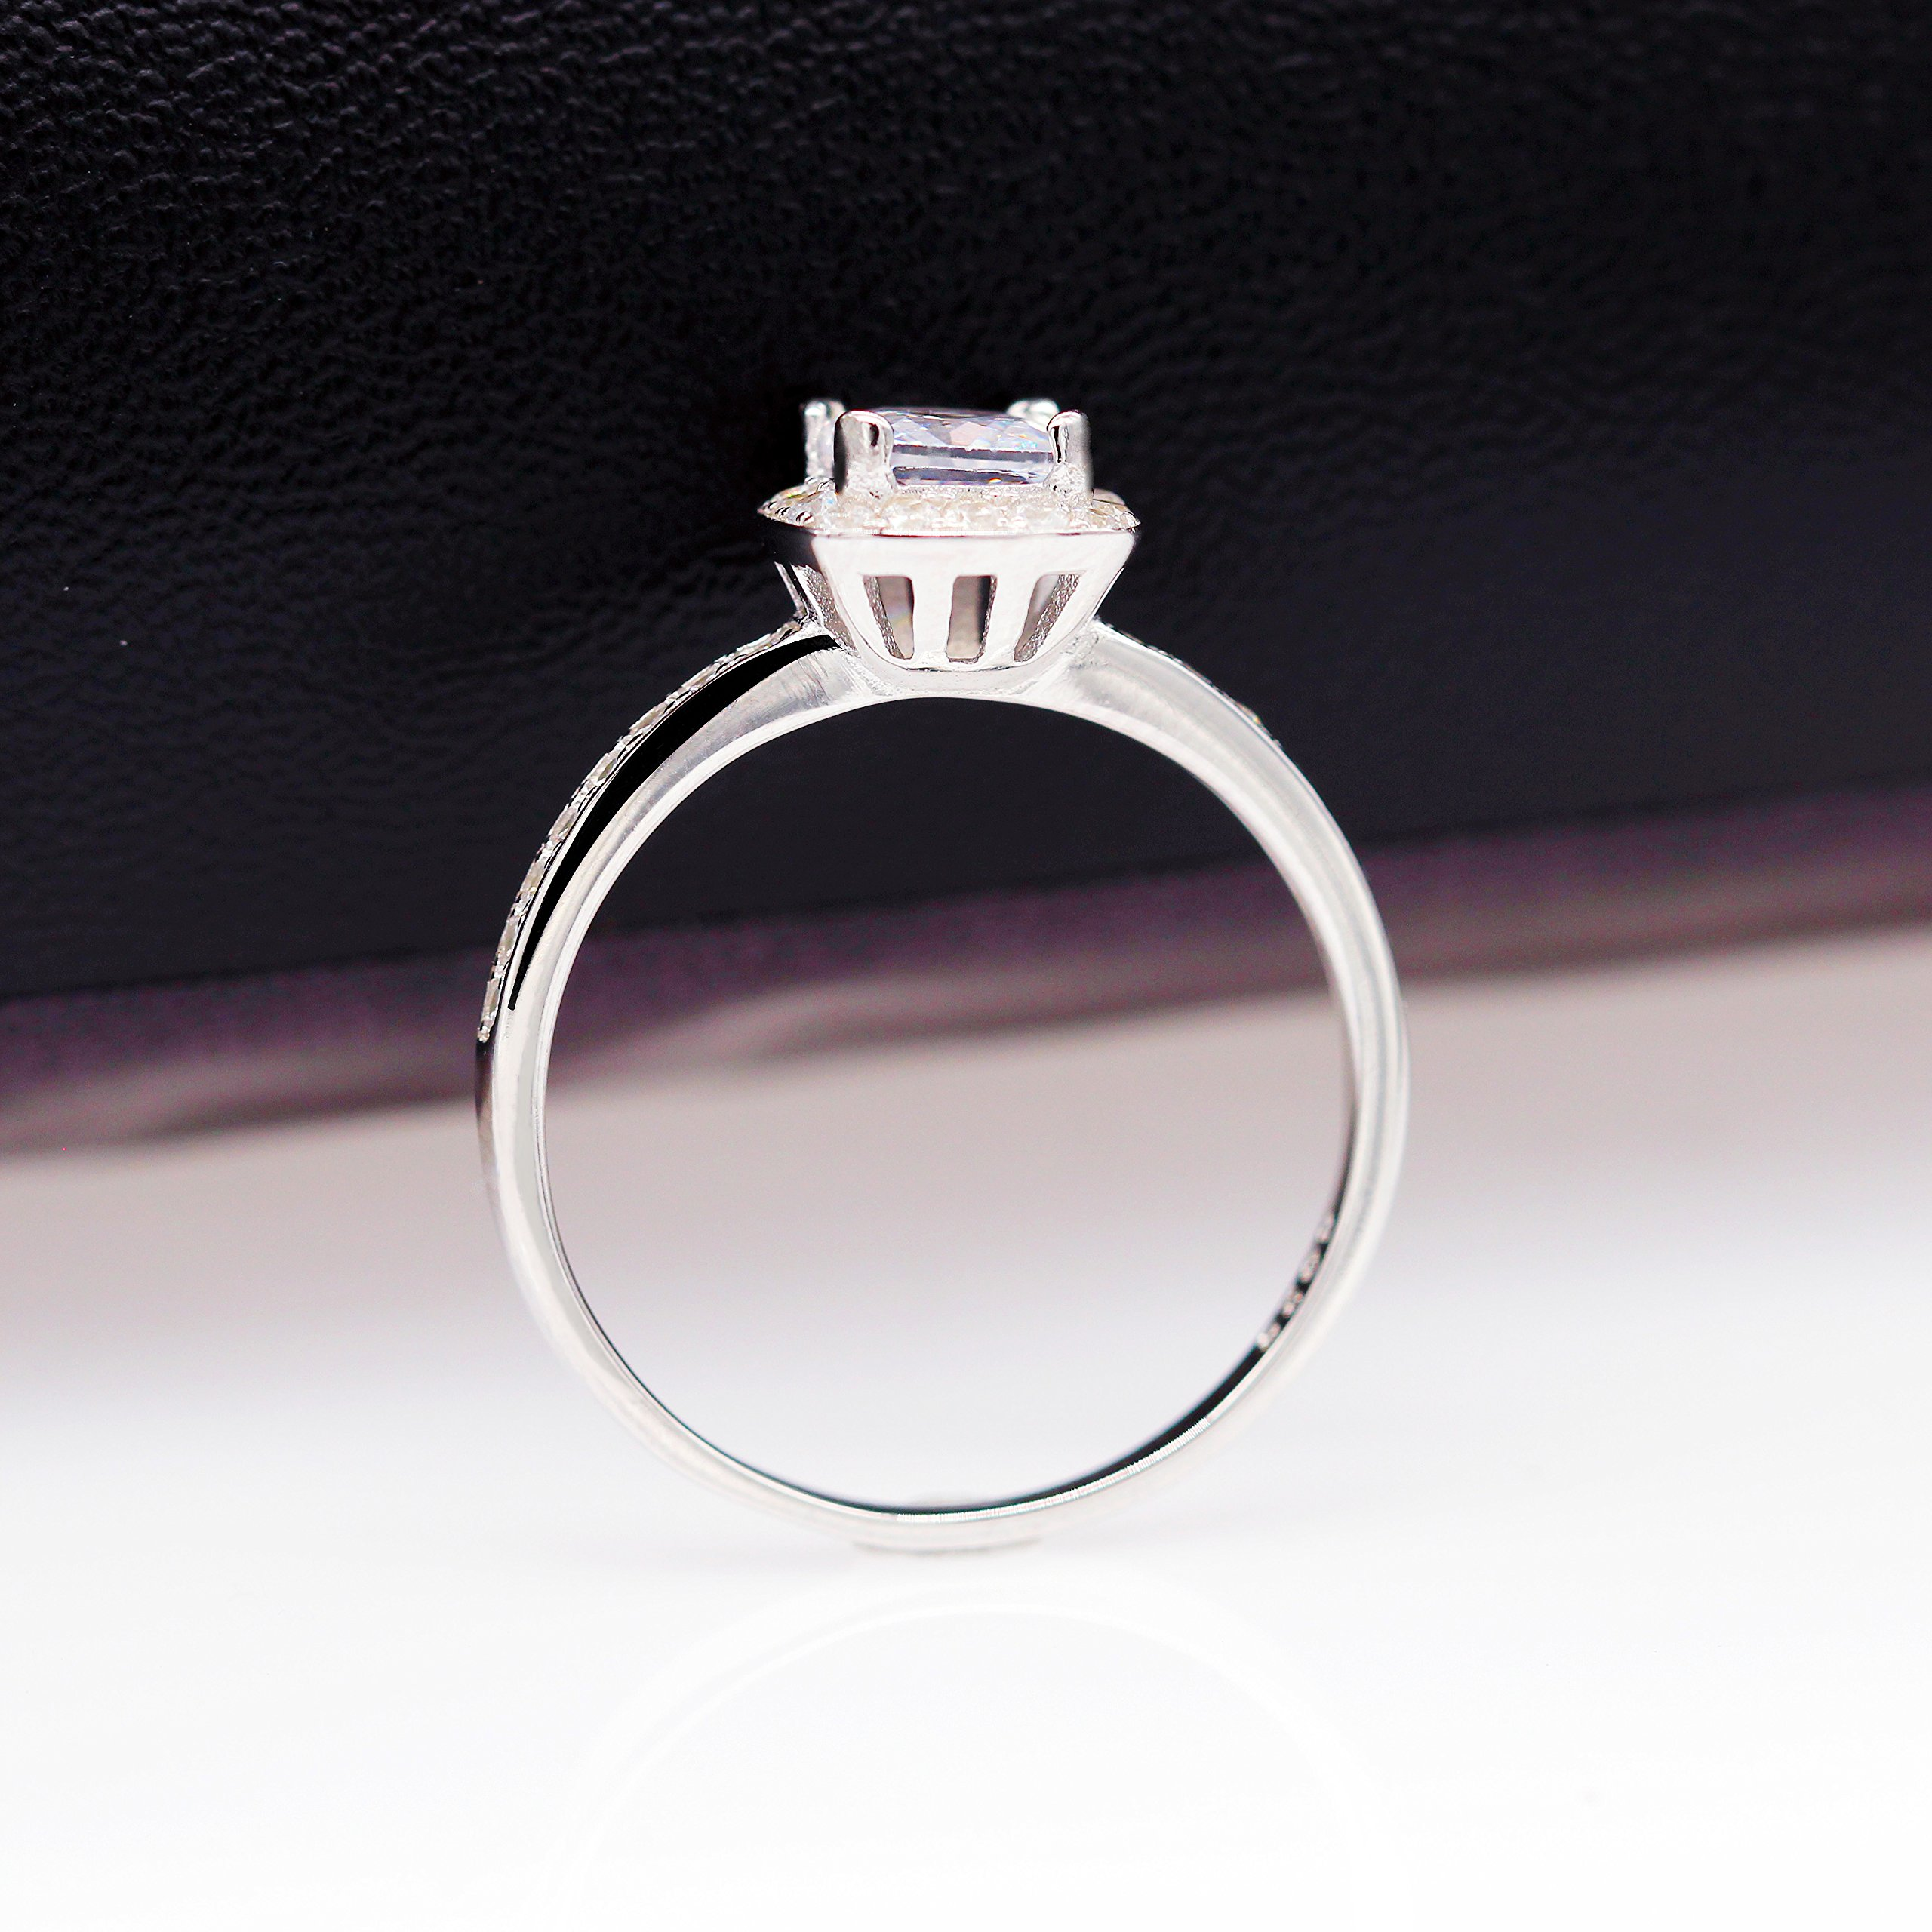 Uloveido 925 Sterling Silver Cushion Cut Cubic Zirconia Halo Solitaire Engagement Rings for Women,Platinum Plated,Wedding Rings,Size 8,LJ074 by Uloveido (Image #5)